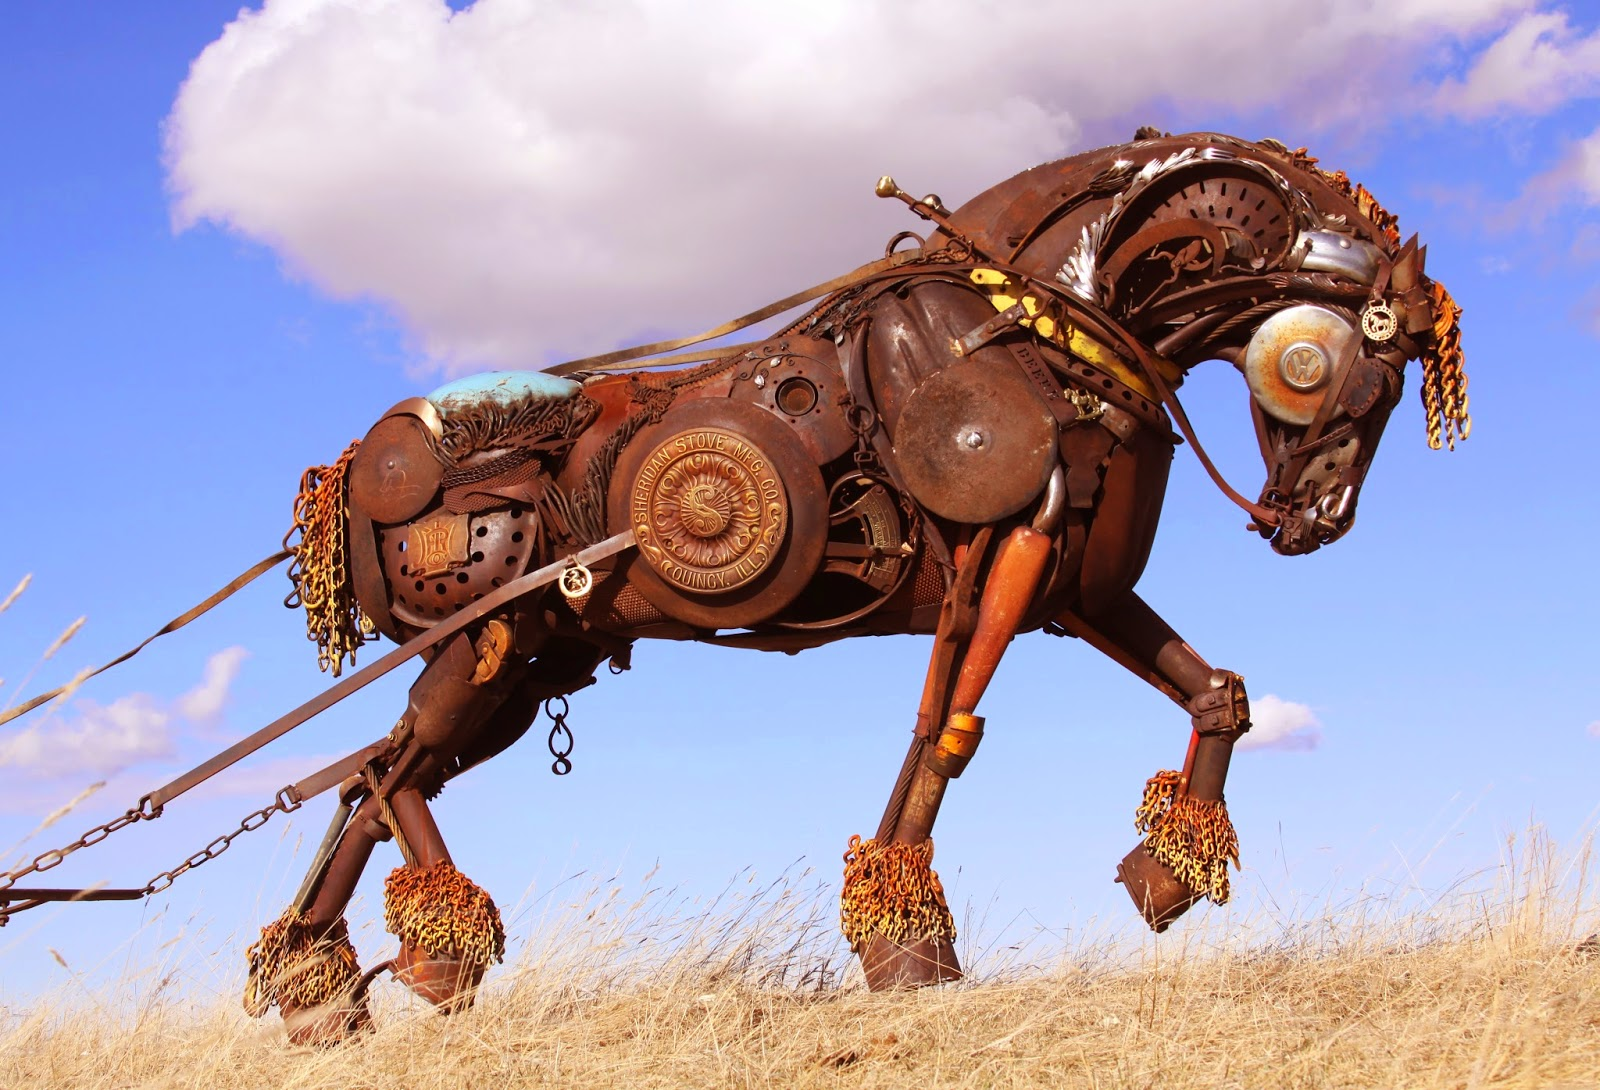 The Welded Sculptures of John Lopez